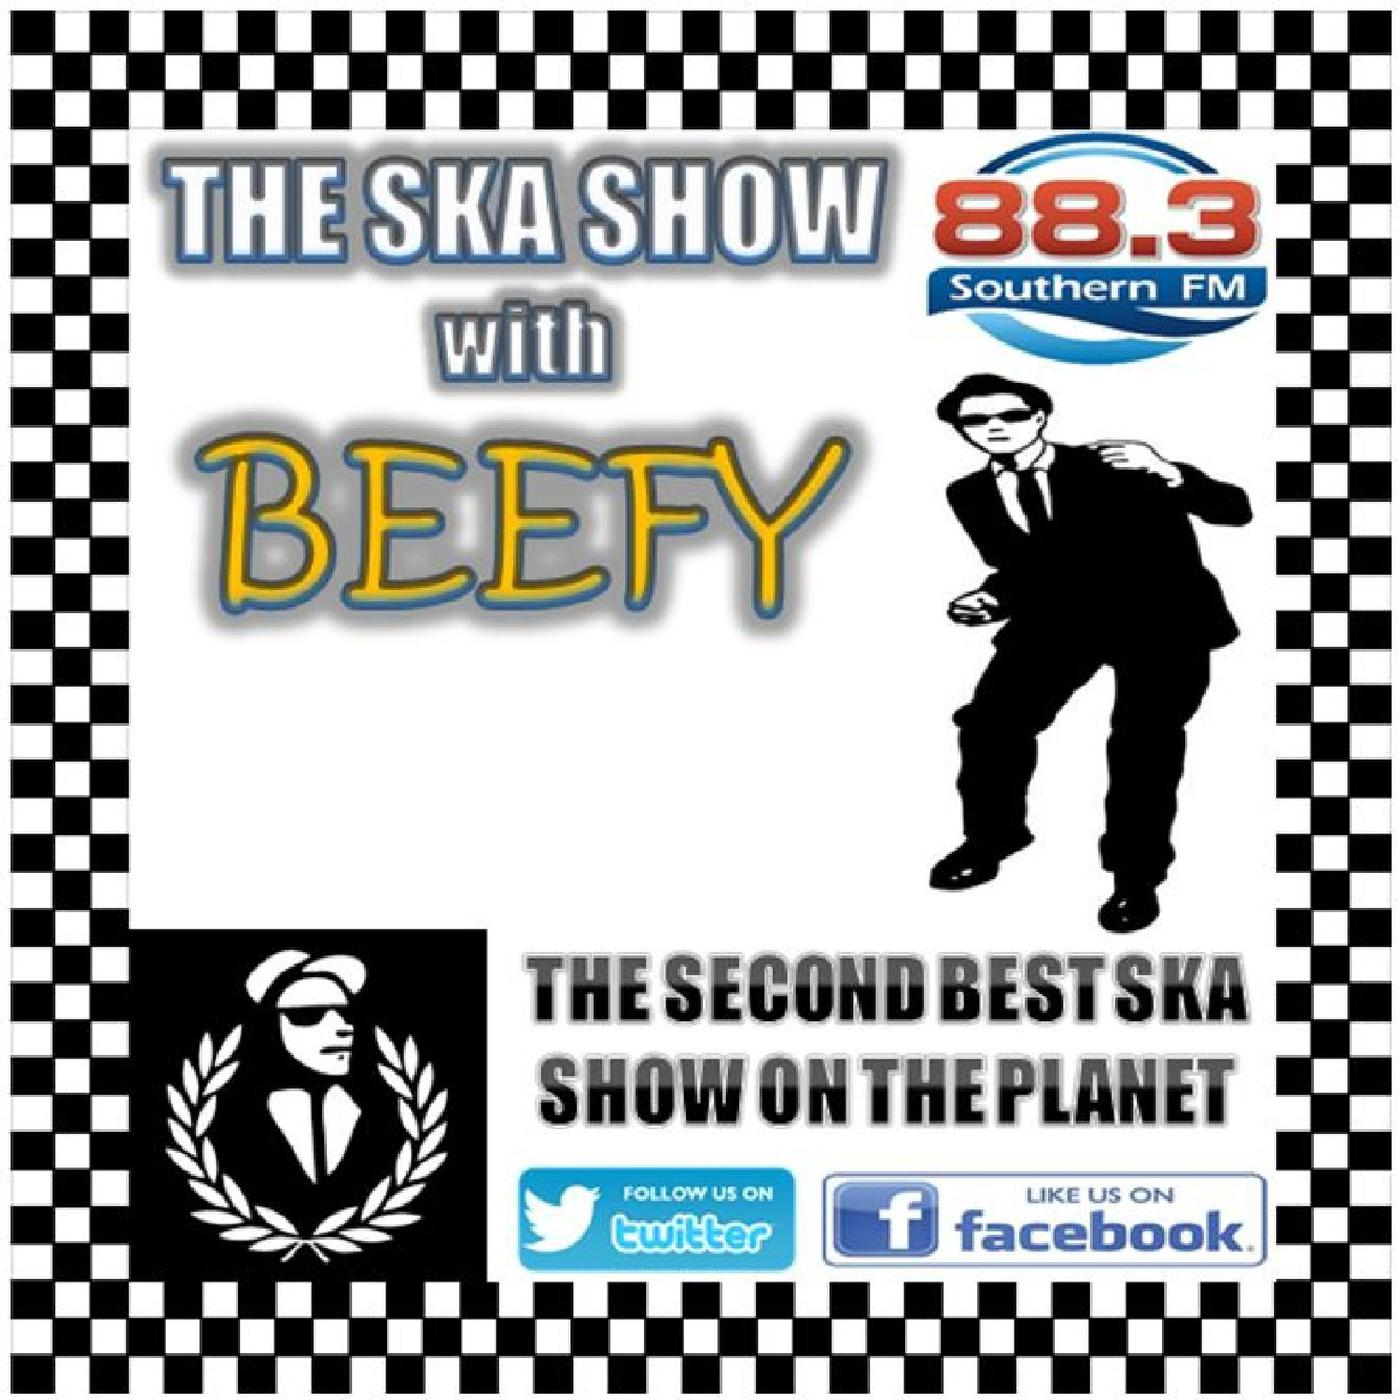 The Ska Show With Beefy, Jan 17th 2019